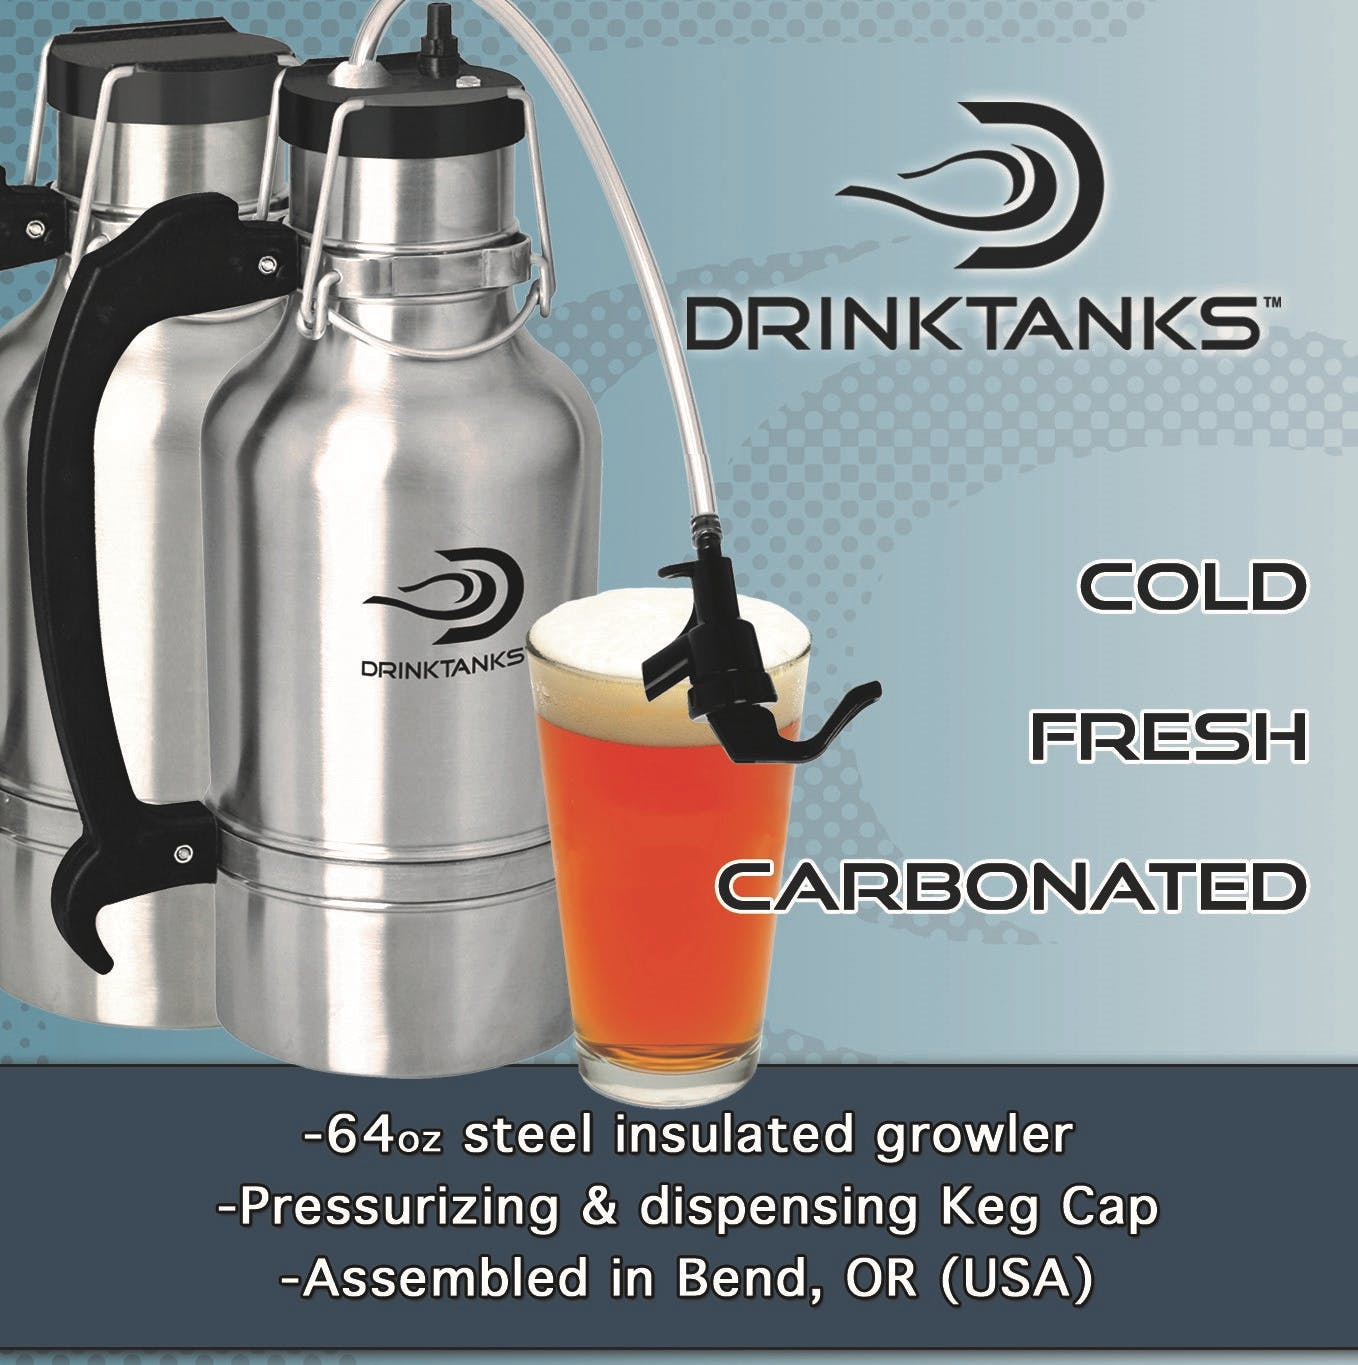 Drink Tanks Growler - Enjoy beer exactly as it was intended. Cold. Fresh. Carbonated. - 64oz Capacity Growler sold by Drink Tanks